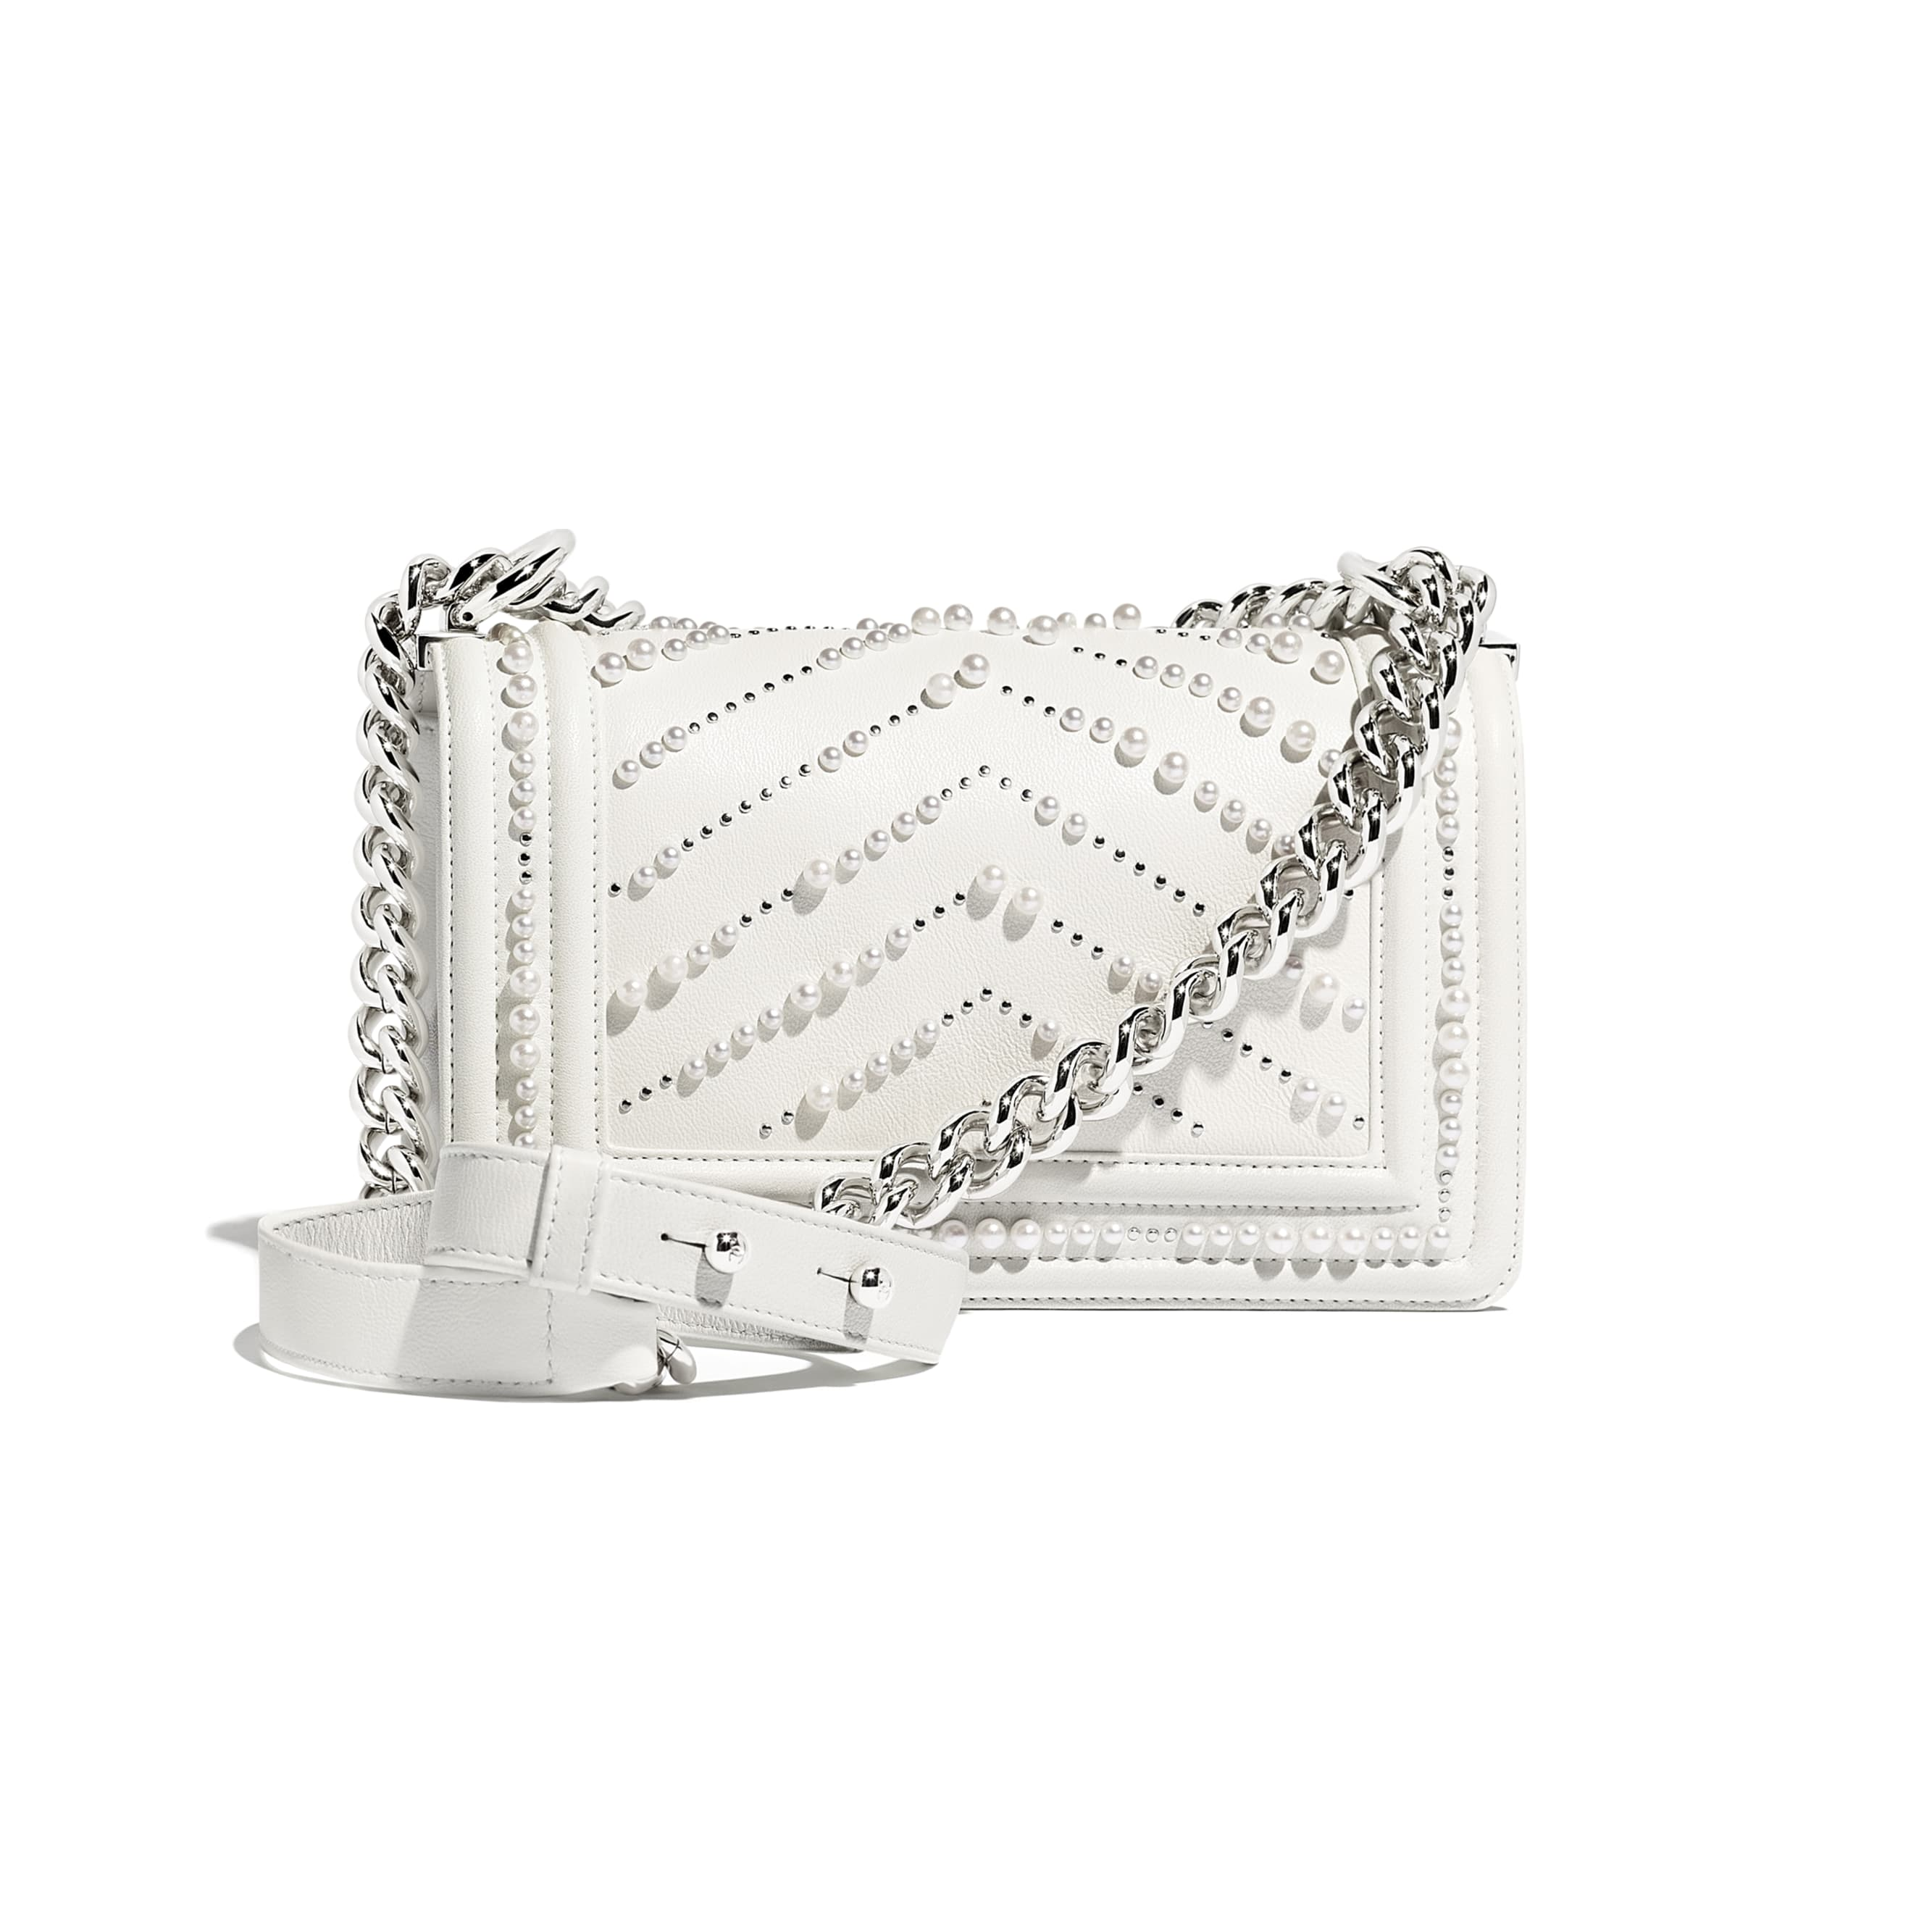 Small BOY CHANEL Handbag - White - Calfskin, Imitation Pearls & Silver-Tone Metal - Alternative view - see standard sized version